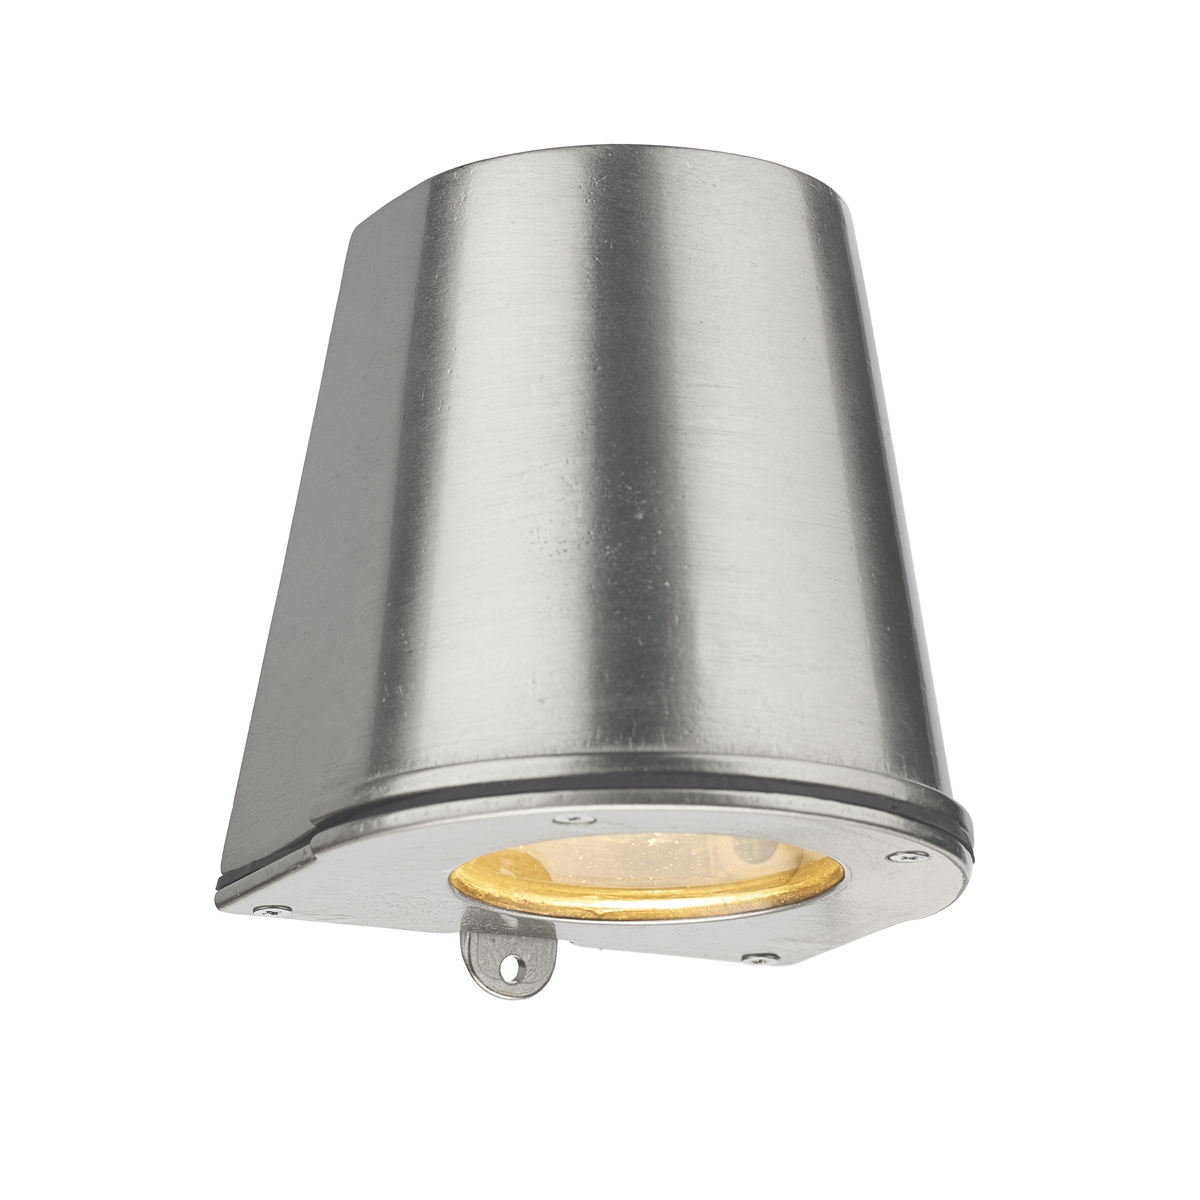 Wall Lights In Brass : Strait Solid Brass IP44 Wall Light in Nickel